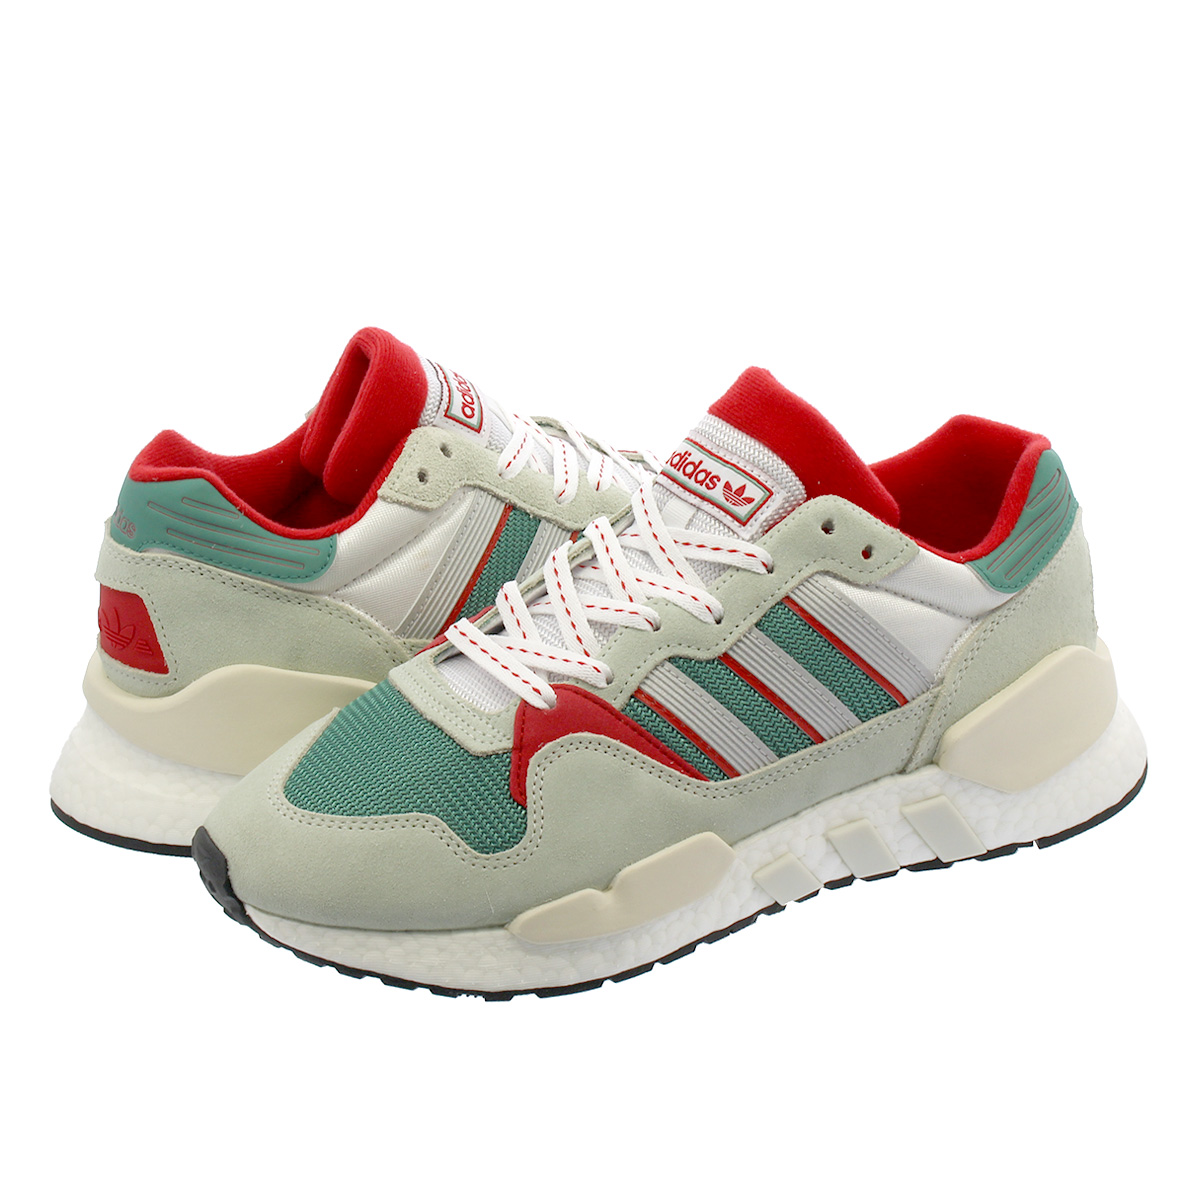 adidas ZX930 x EQT 【Never Made】 アディダス ZX930 x EQT FUTURE HYDRO/SILVER MET/ASH SILVER g26806